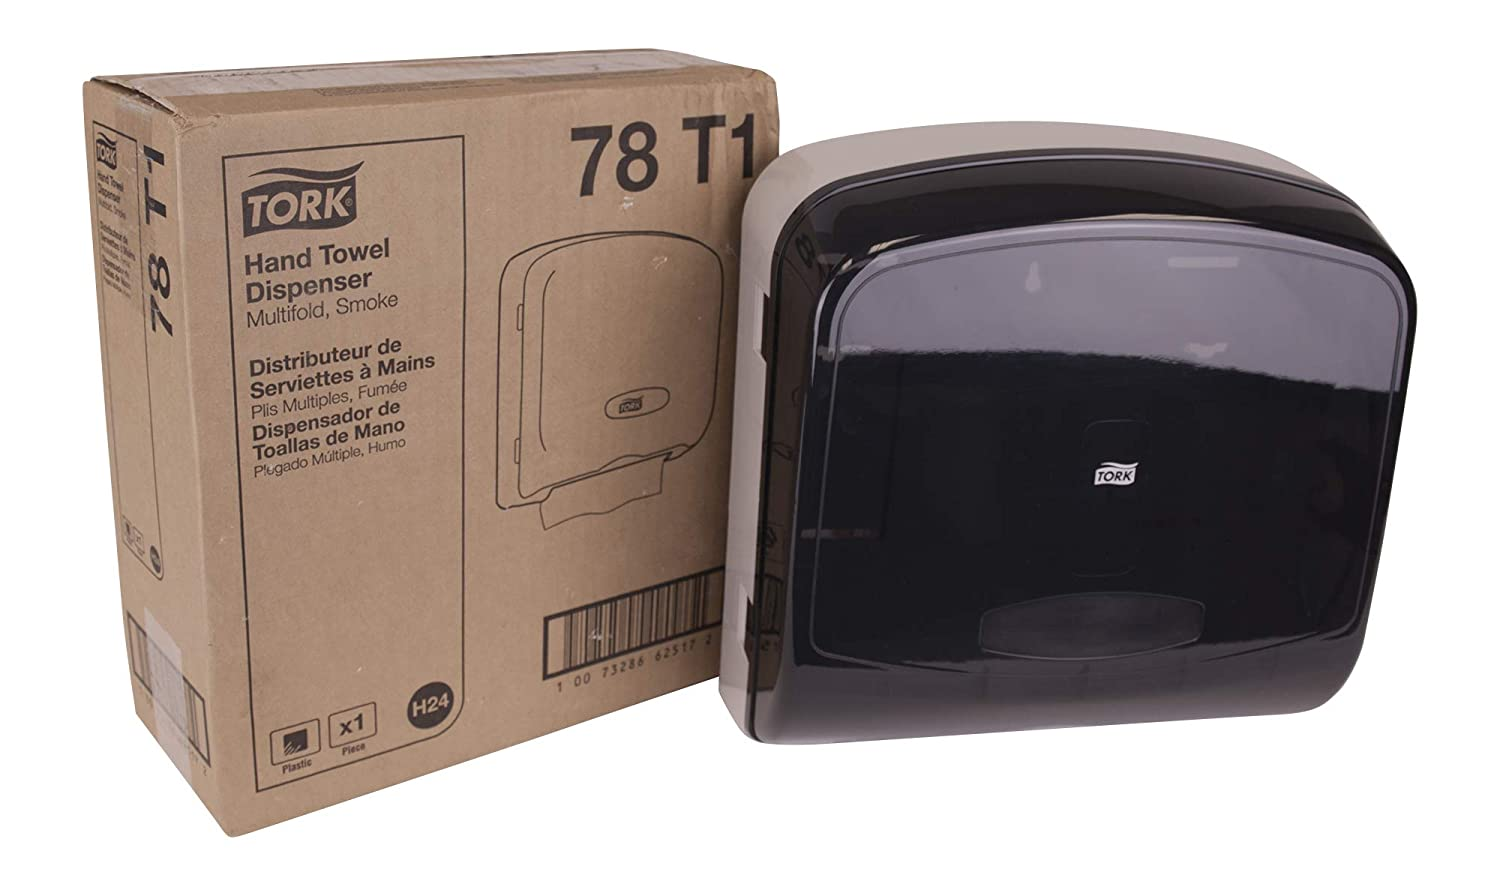 Tork 78T1 Multifold Hand Towel Dispenser, Plastic, 13.0